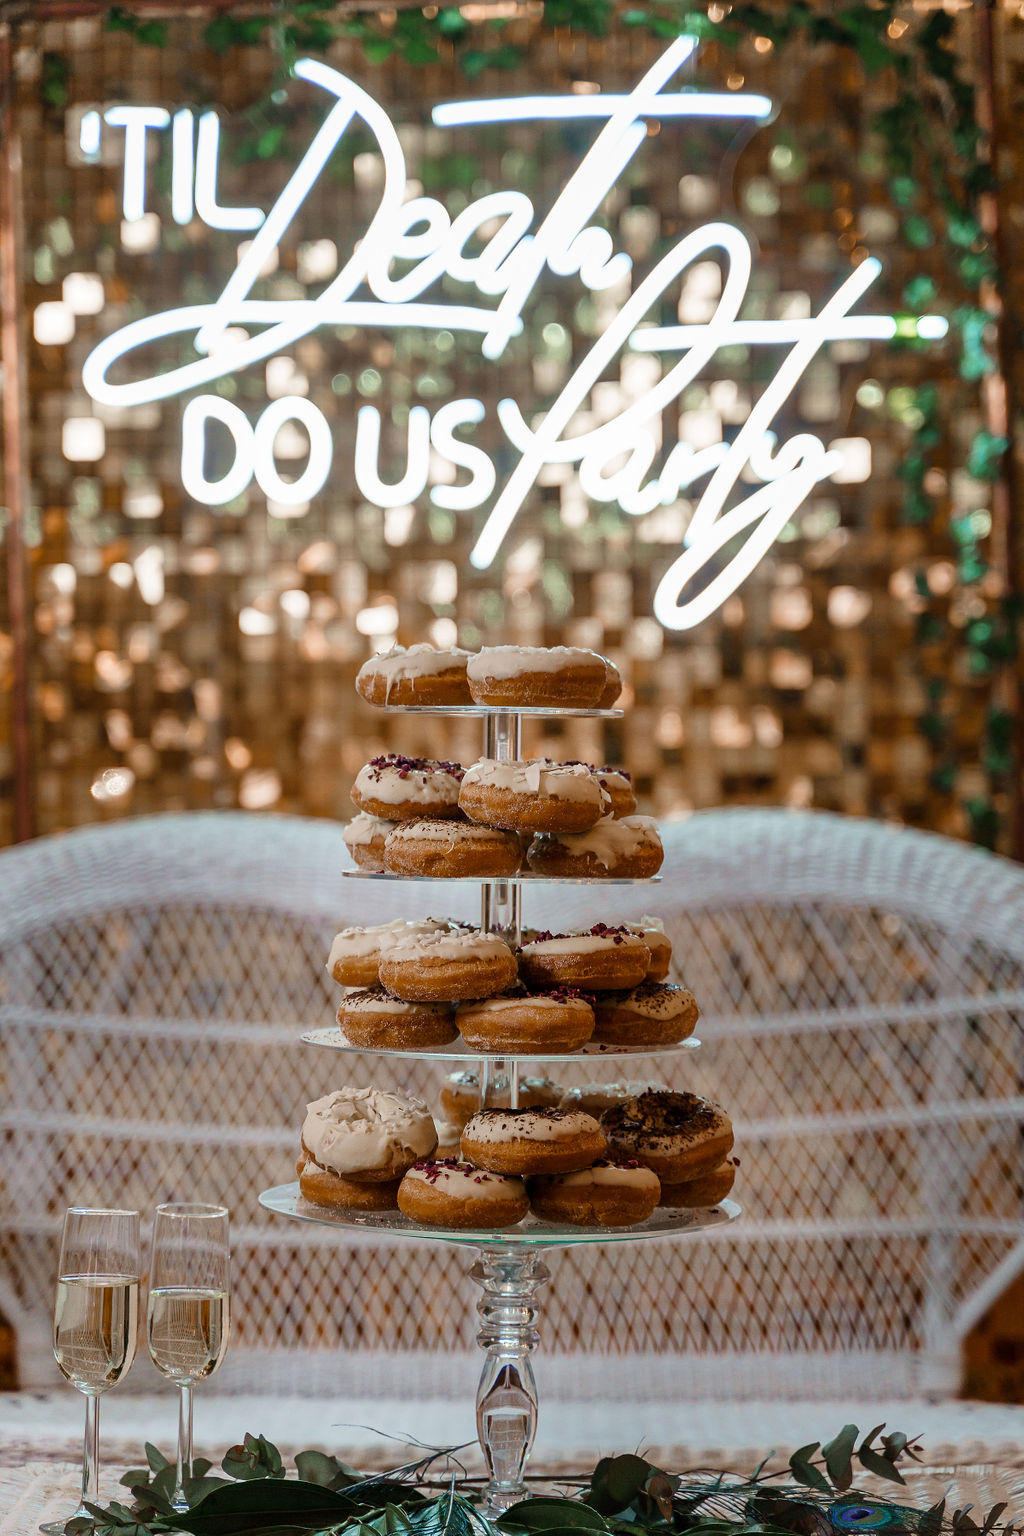 peacock themed wedding - peacock wedding - unique wedding colour scheme - quirky wedding - luxurious wedding - neon wedding sign - til death do us party - sparkly wedding backdrop-- wedding doughnuts